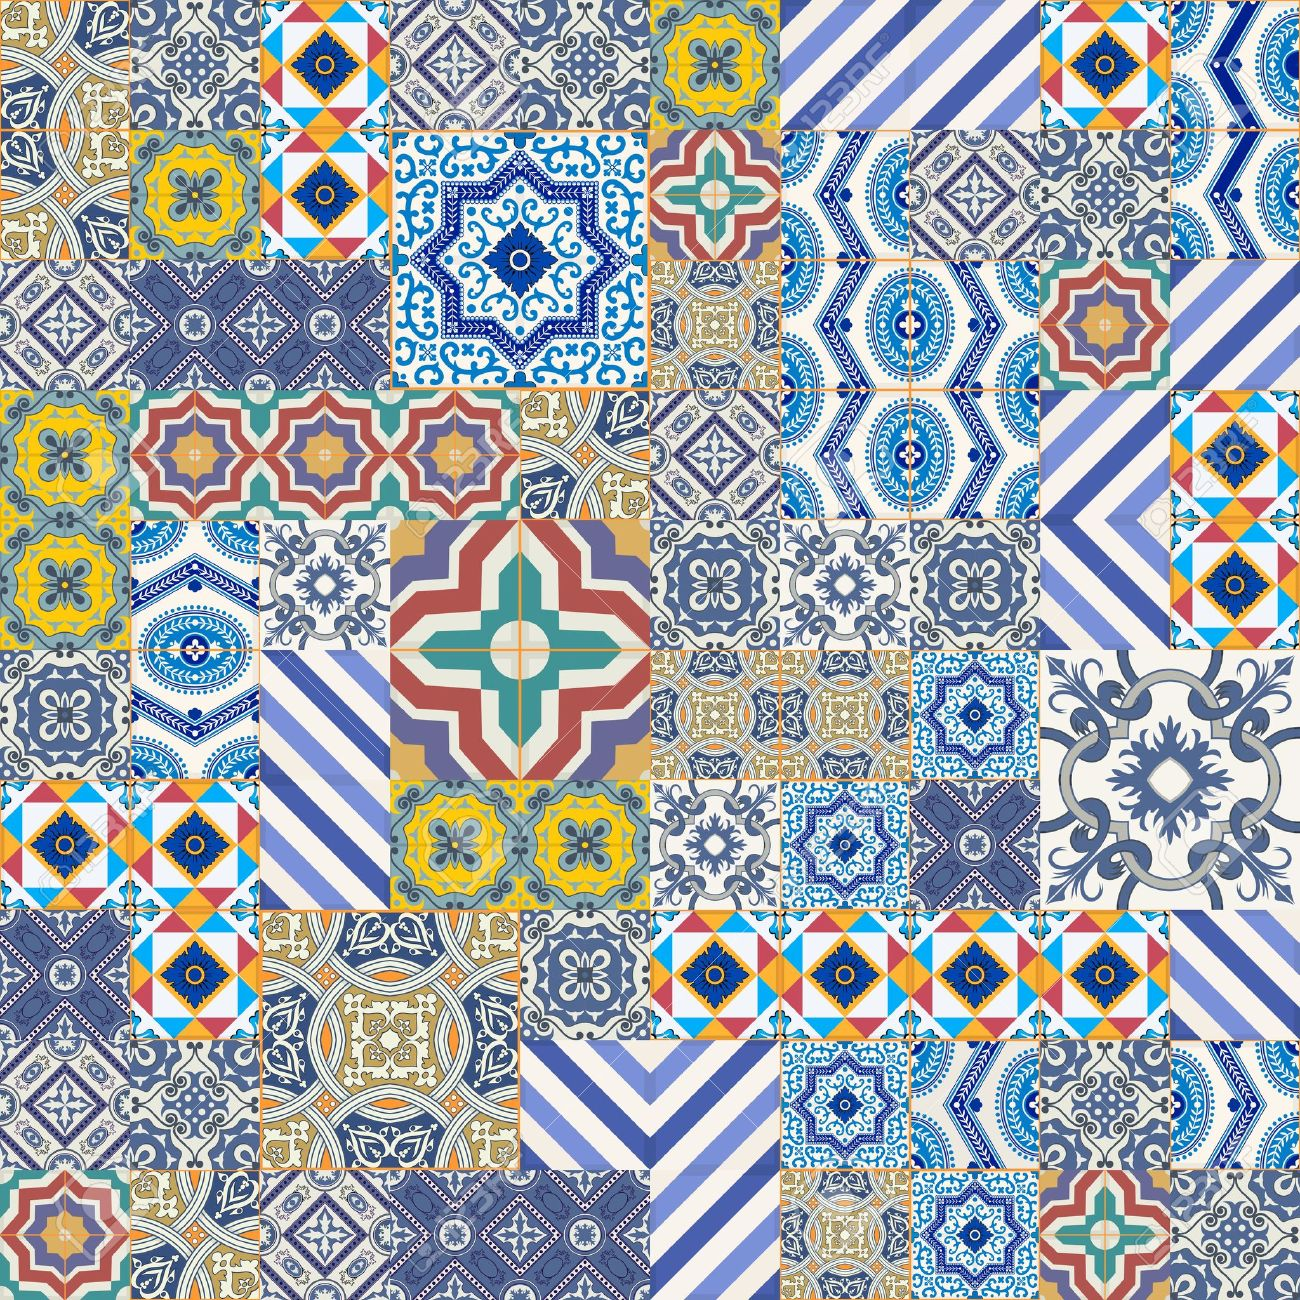 Mega Gorgeous seamless patchwork pattern from colorful Moroccan, Portuguese  tiles, Azulejo, ornaments.. Can be used for wallpaper, pattern fills, web page background,surface textures. Stock Vector - 46036875